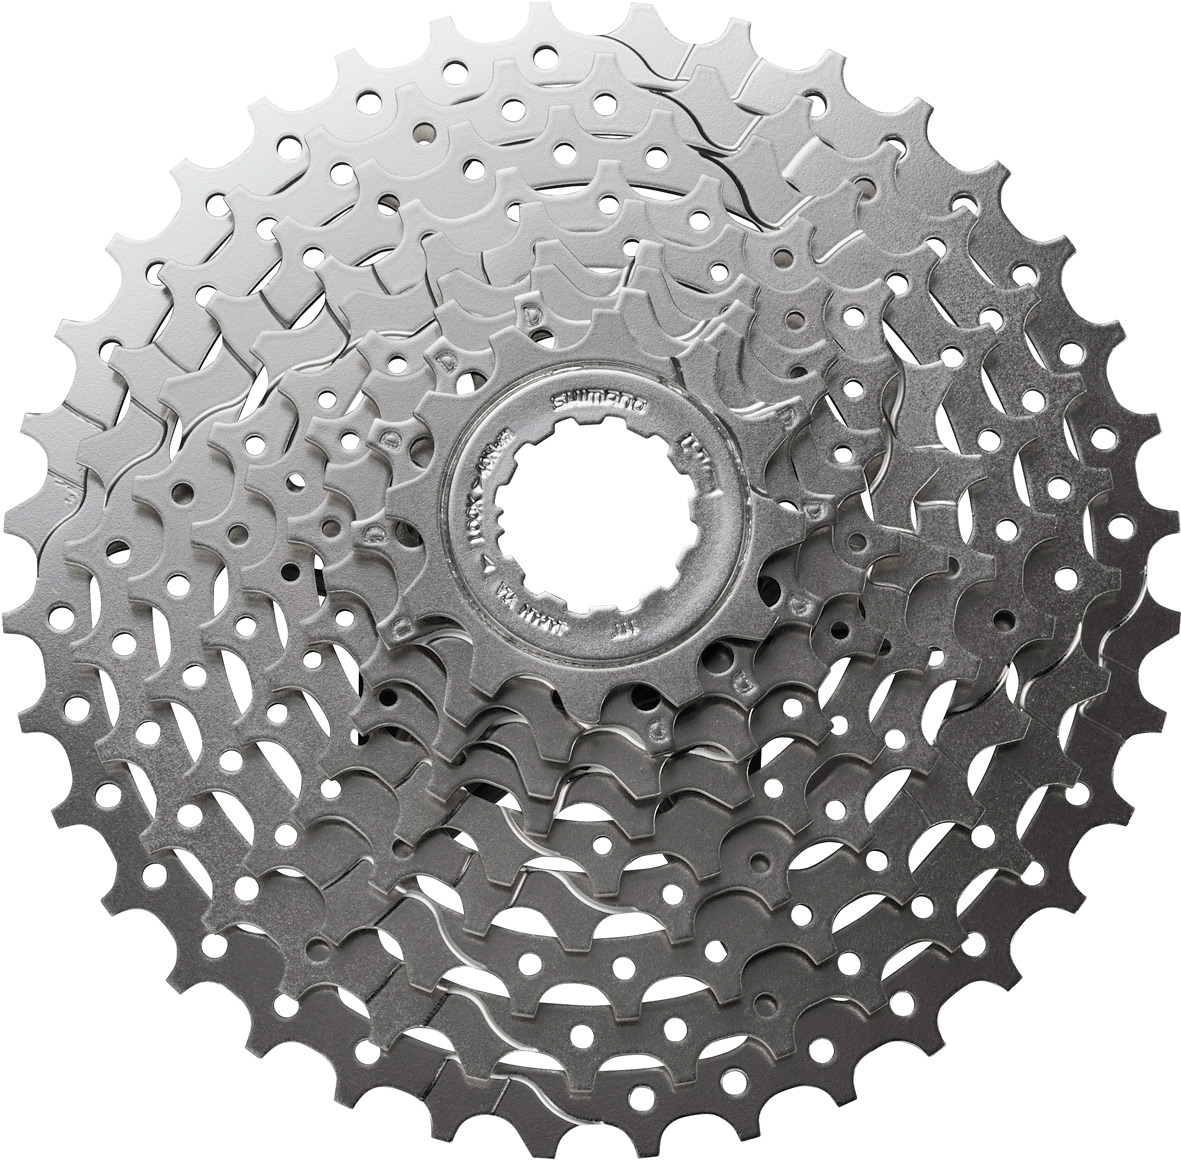 CS-HG400 Alivio 9-speed cassette 12-36